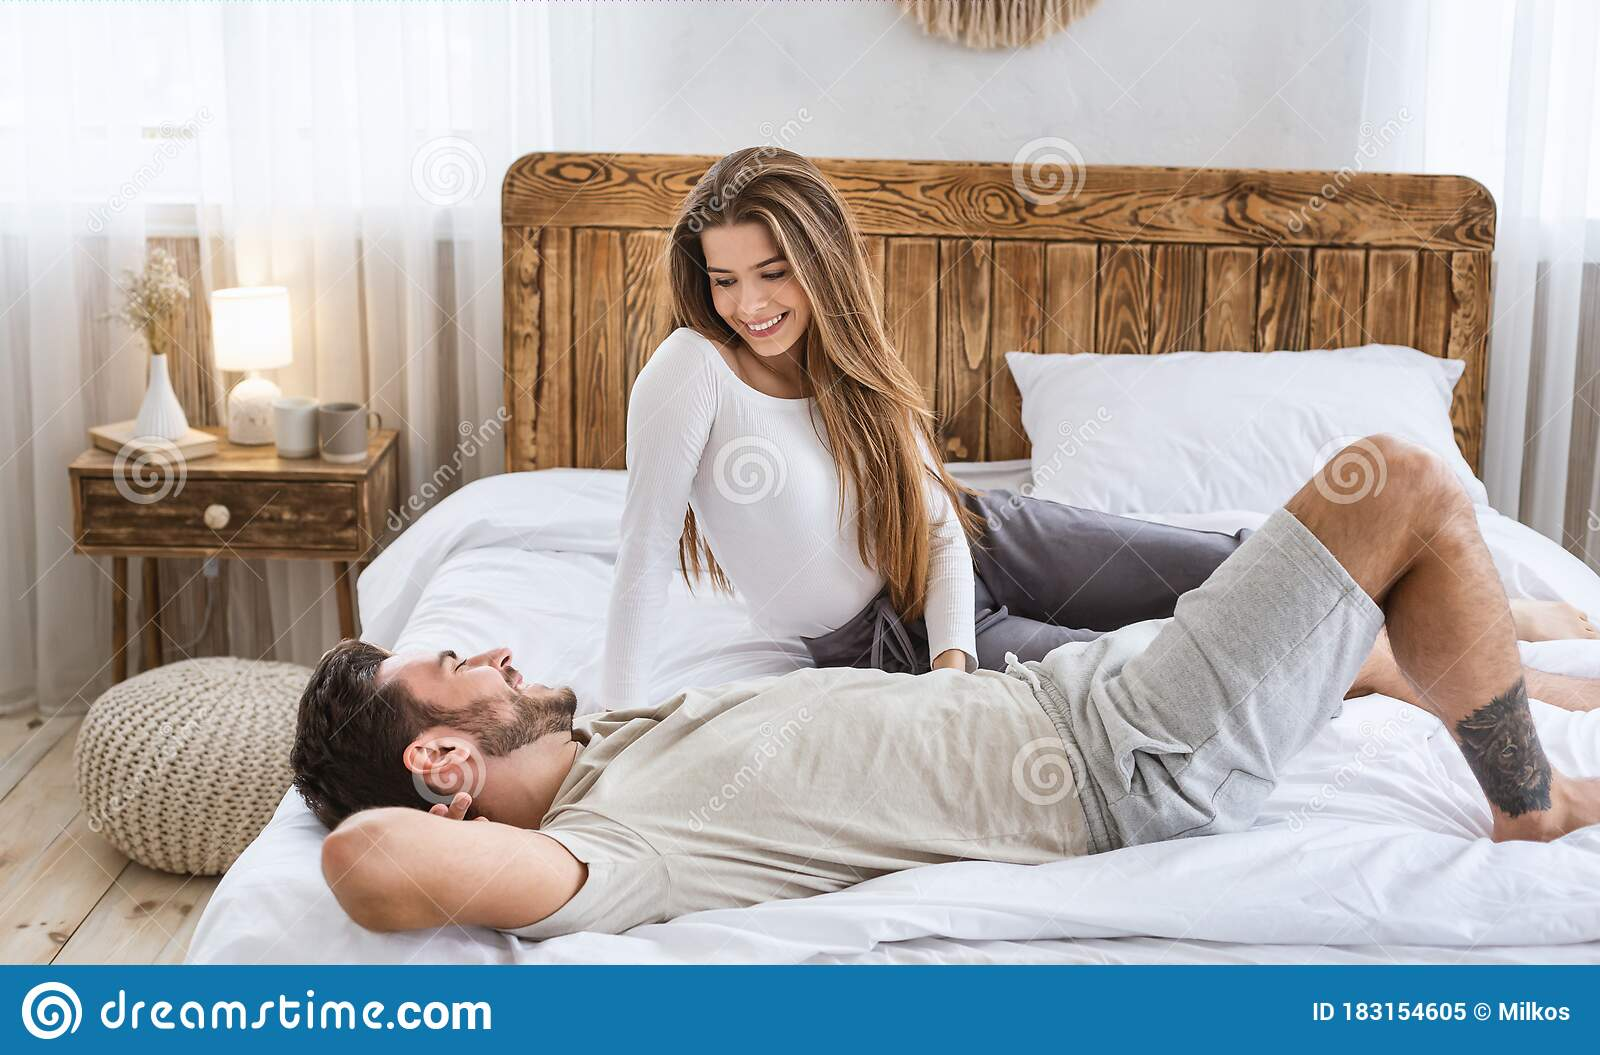 Man And Woman Talking In Bed In Bedroom Interior Stock